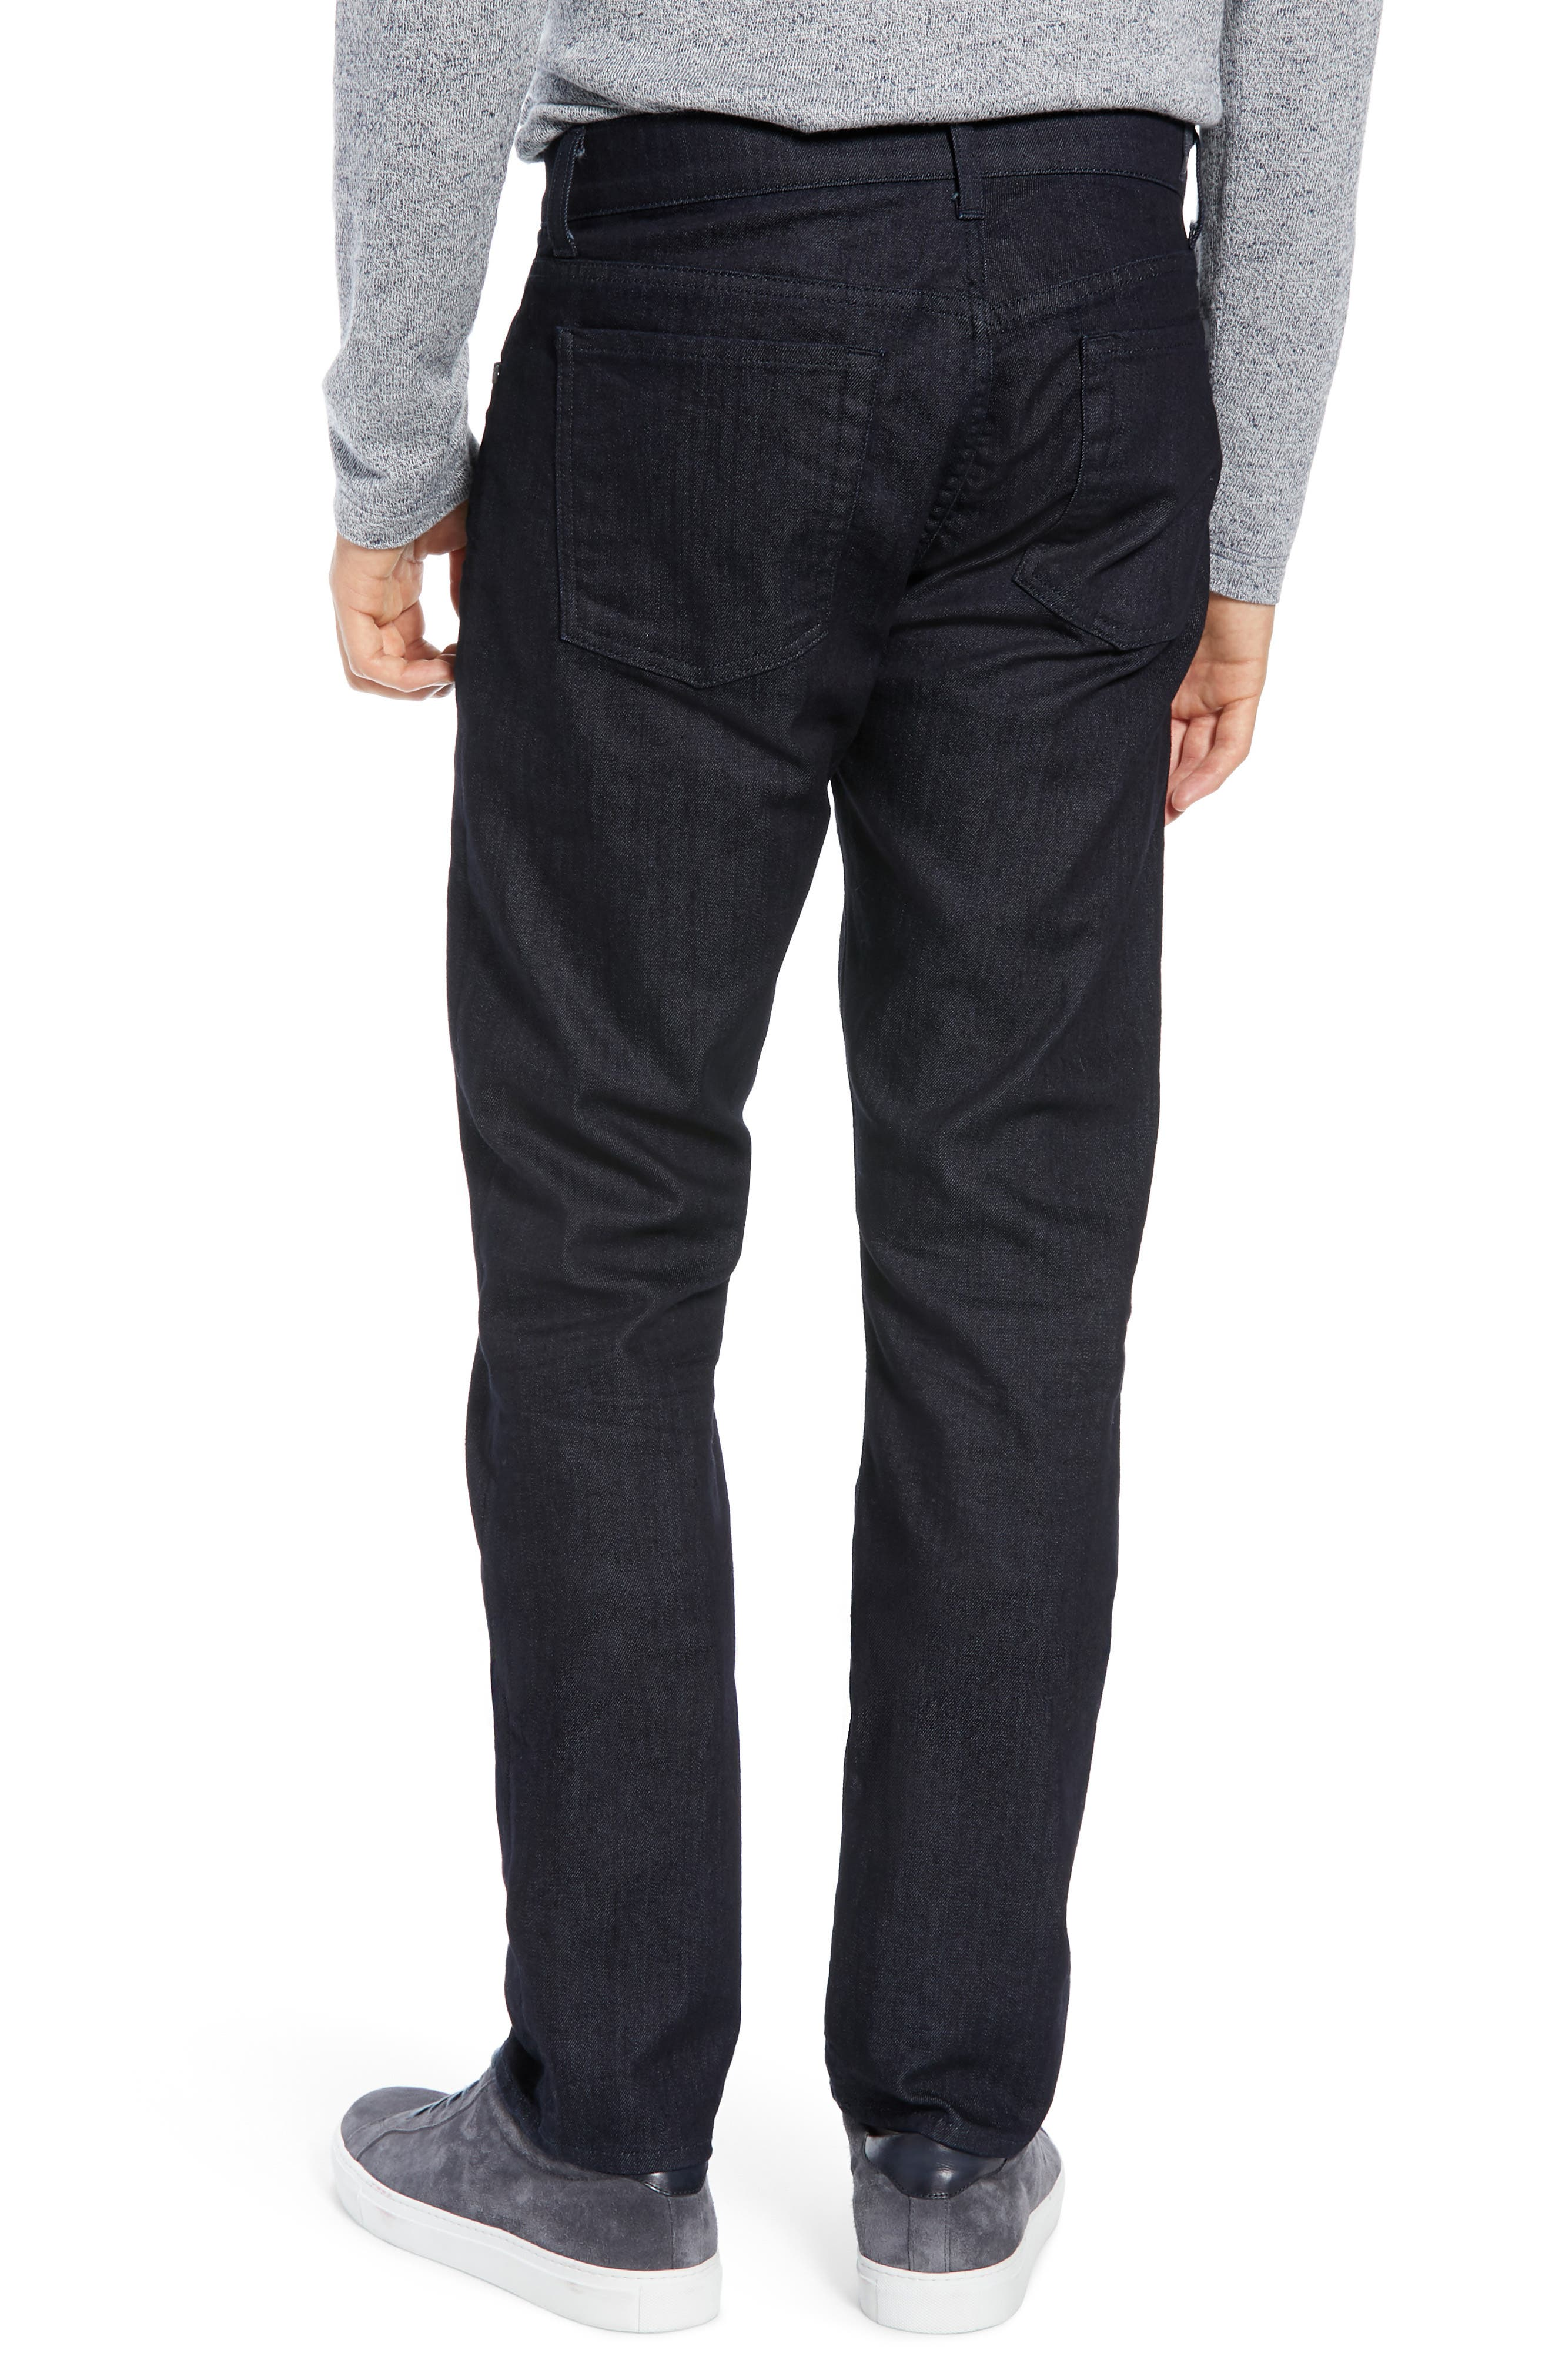 7 FOR ALL MANKIND<SUP>®</SUP>, Adrien Slim Fit Jeans, Alternate thumbnail 2, color, EXECUTIVE